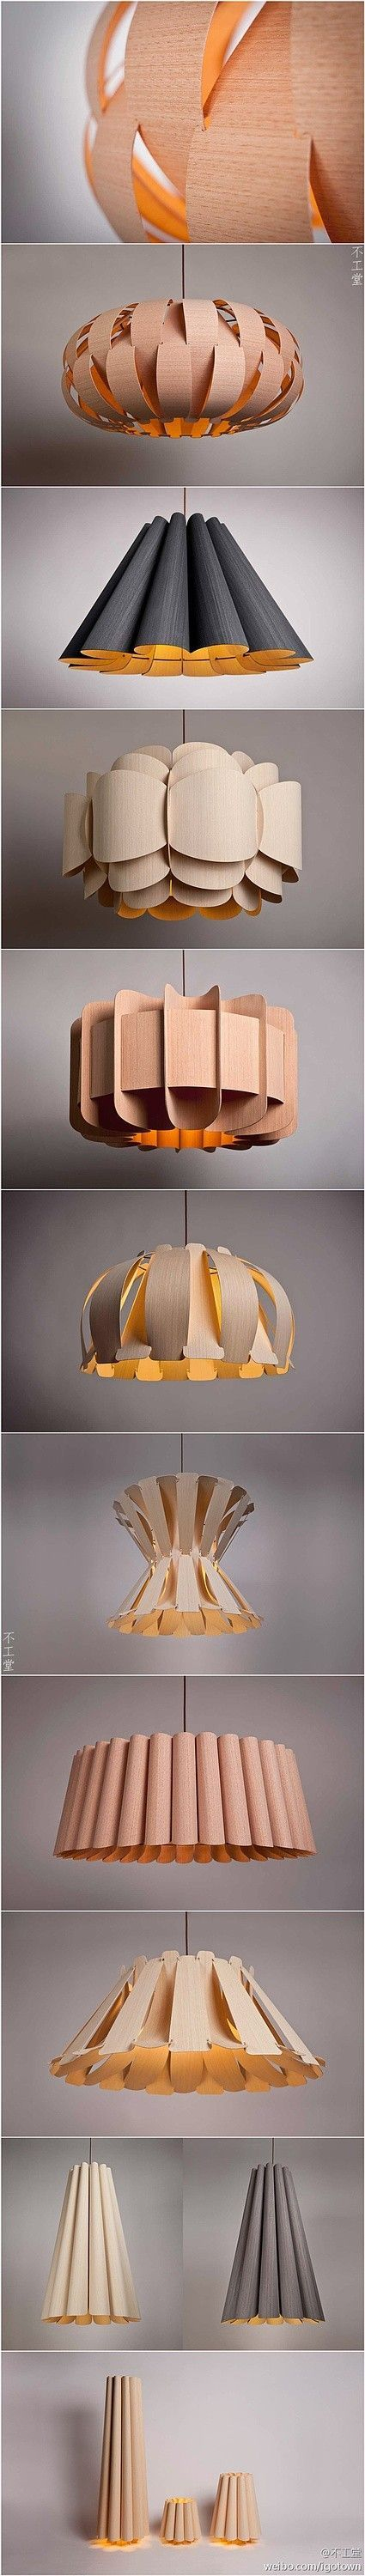 25-Beautiful-DIY-Wood-Lamps-And-Chandeliers-That-Will-Light-Up-Your-Home-homesthetics-7.jpg (425×3000)